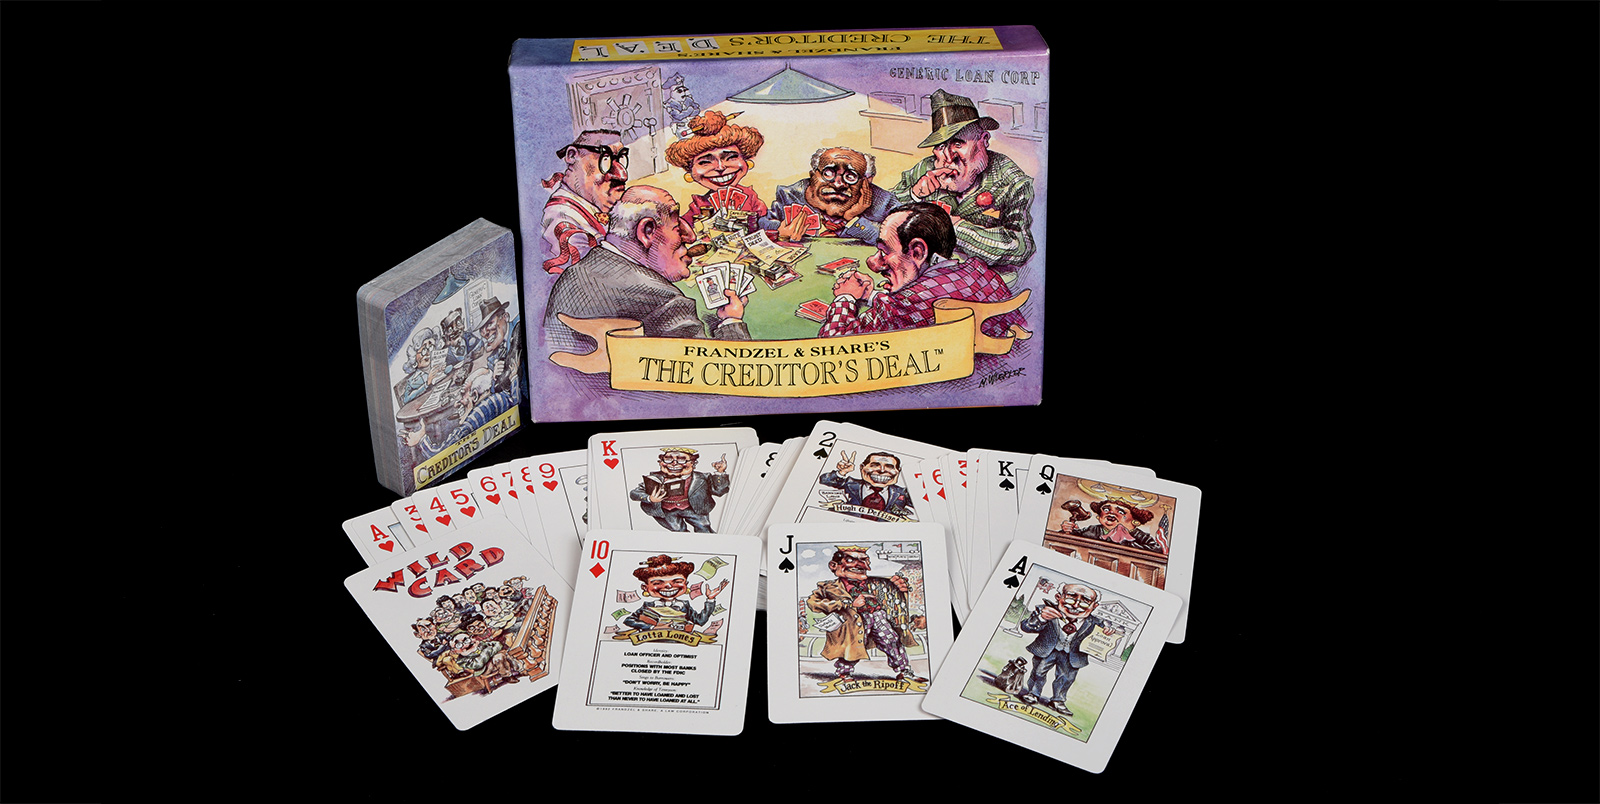 Frandzel's The Creditor's Deal card game